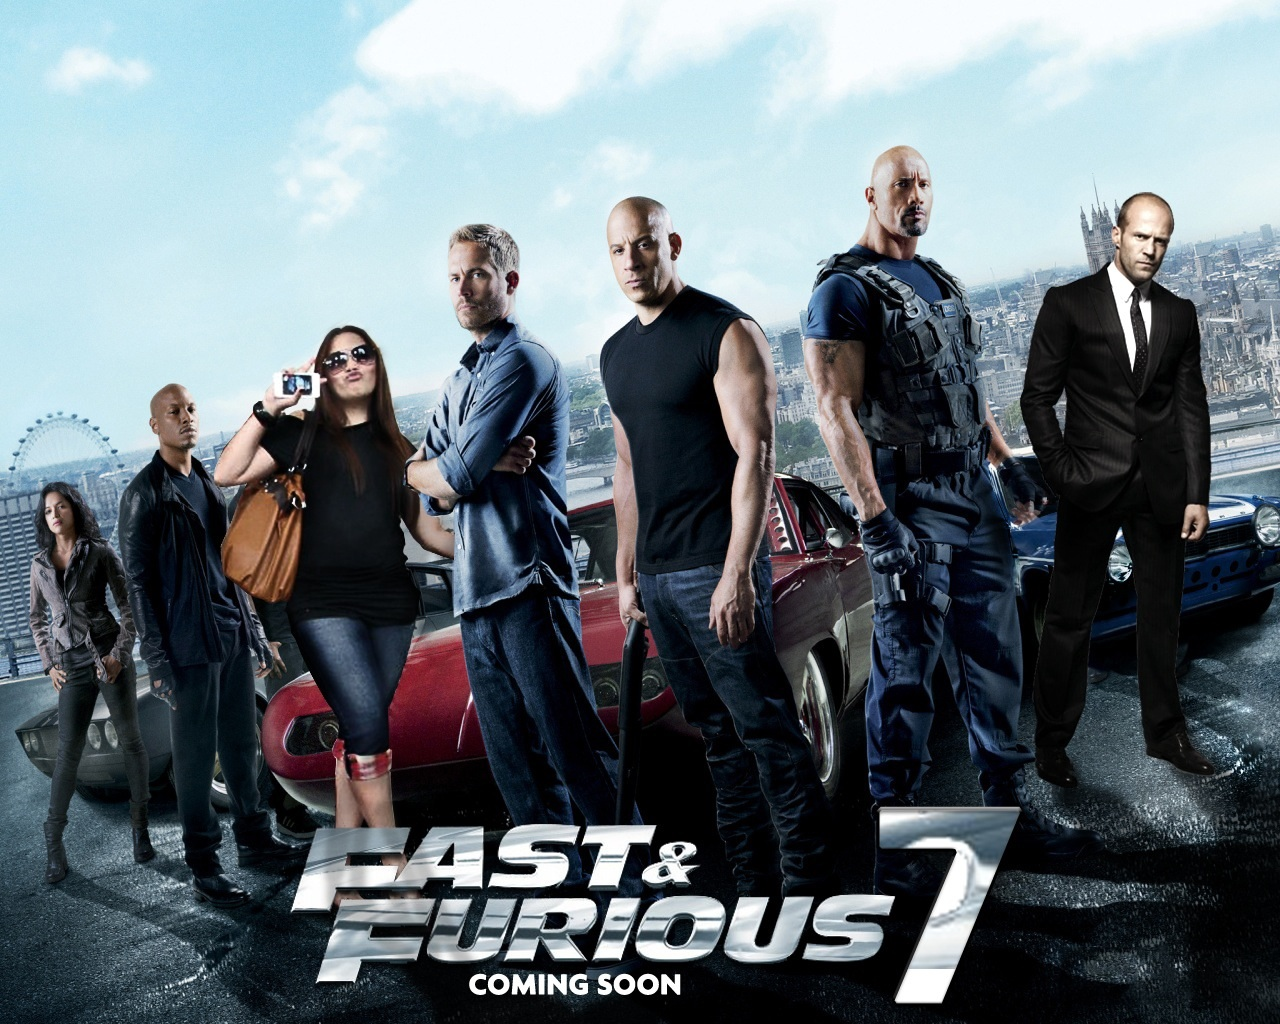 fast furious 7 free download full movie fastandfurious7freedownload